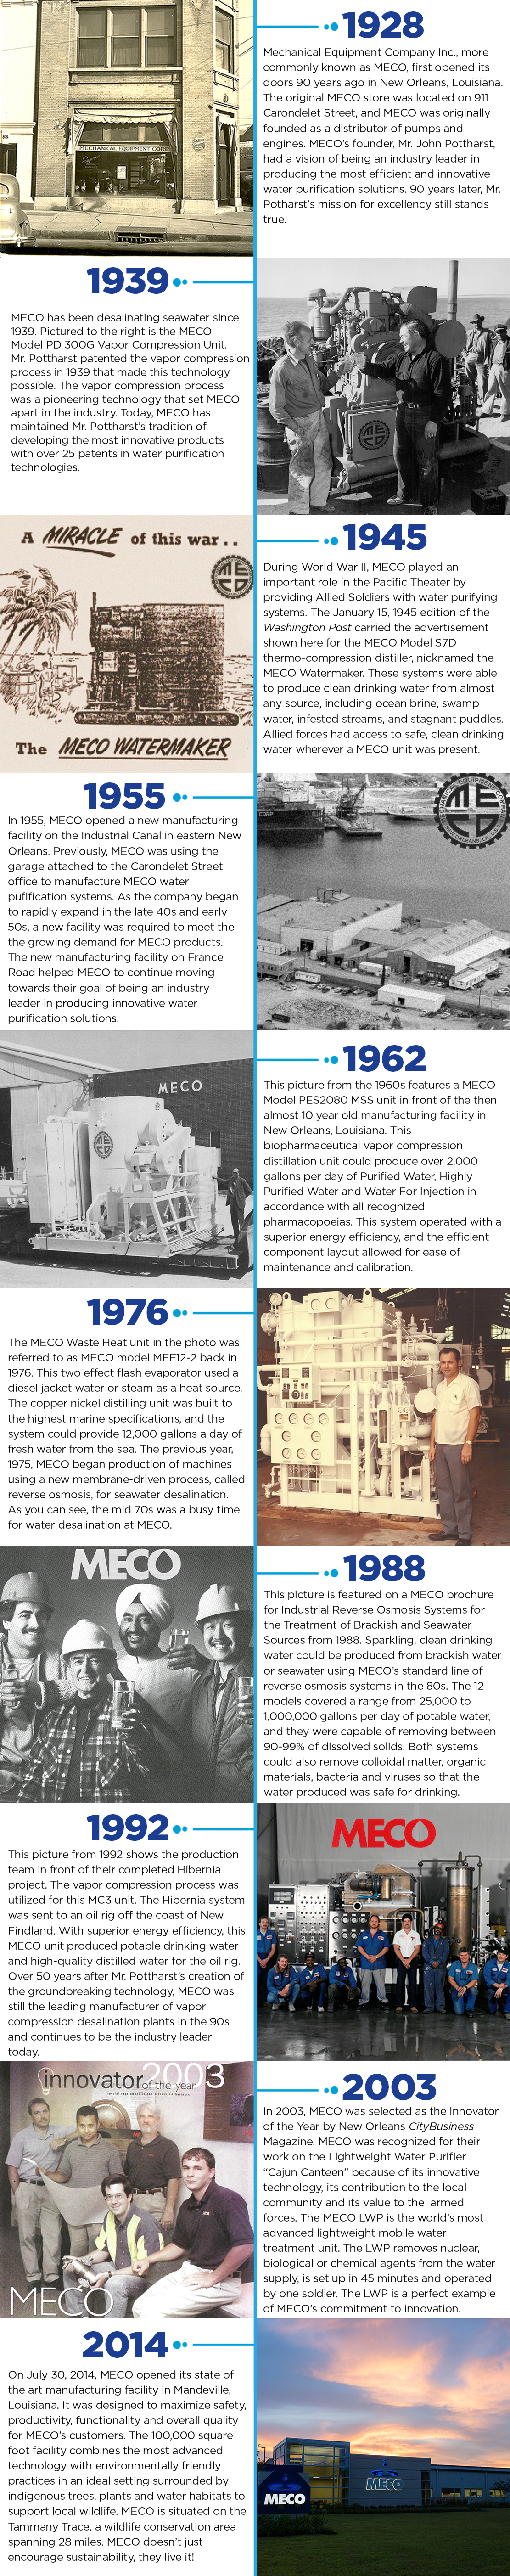 MECO through the decades_Timeline_9